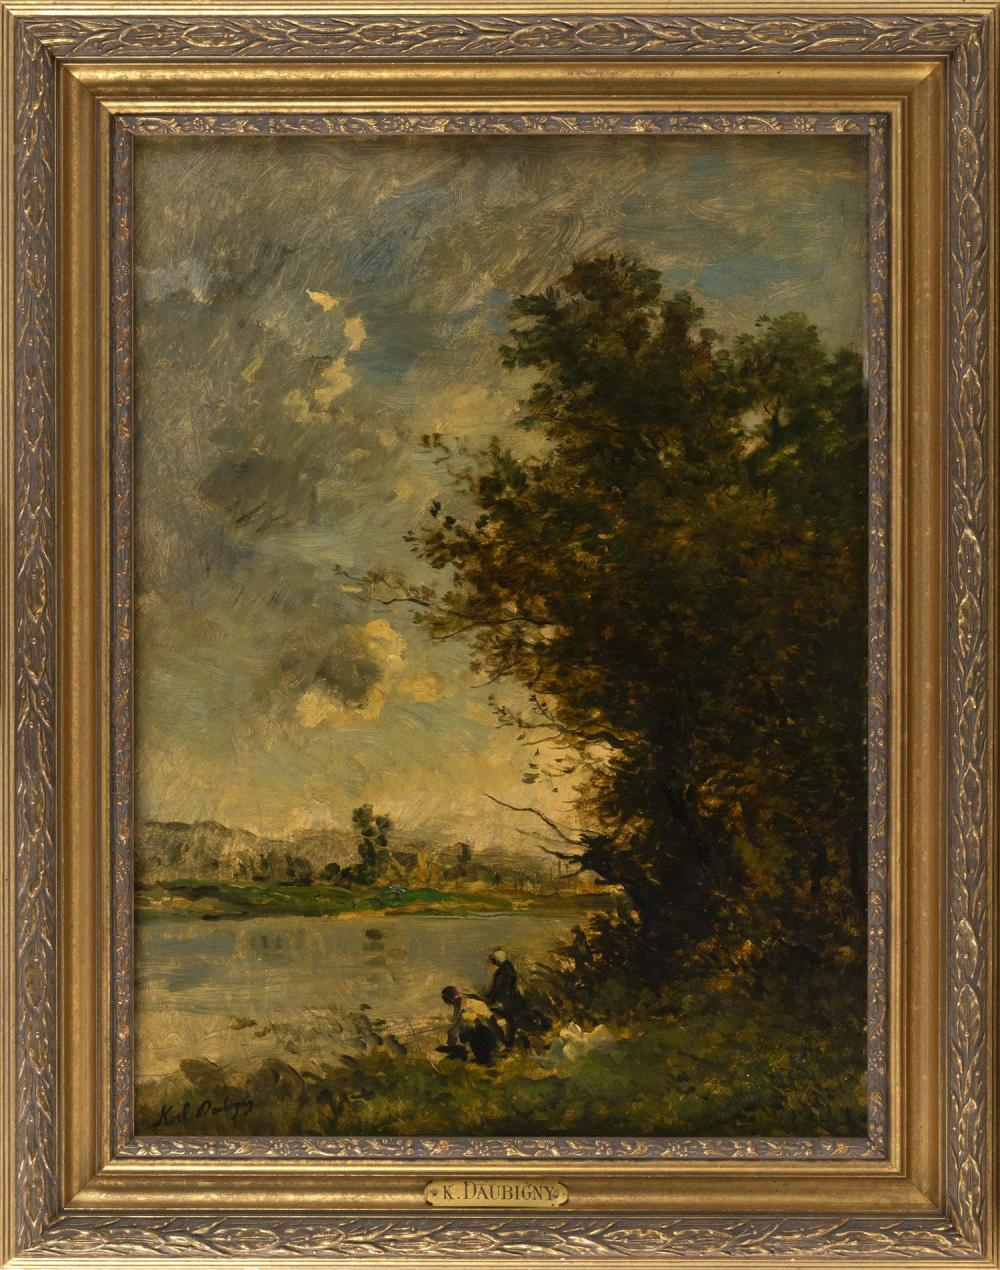 "KARL DAUBIGNY, France, 1846-1886, Figures by the water's edge., Oil on panel, 24"" x 17.5"". Framed 29.5"" x 23.5""."